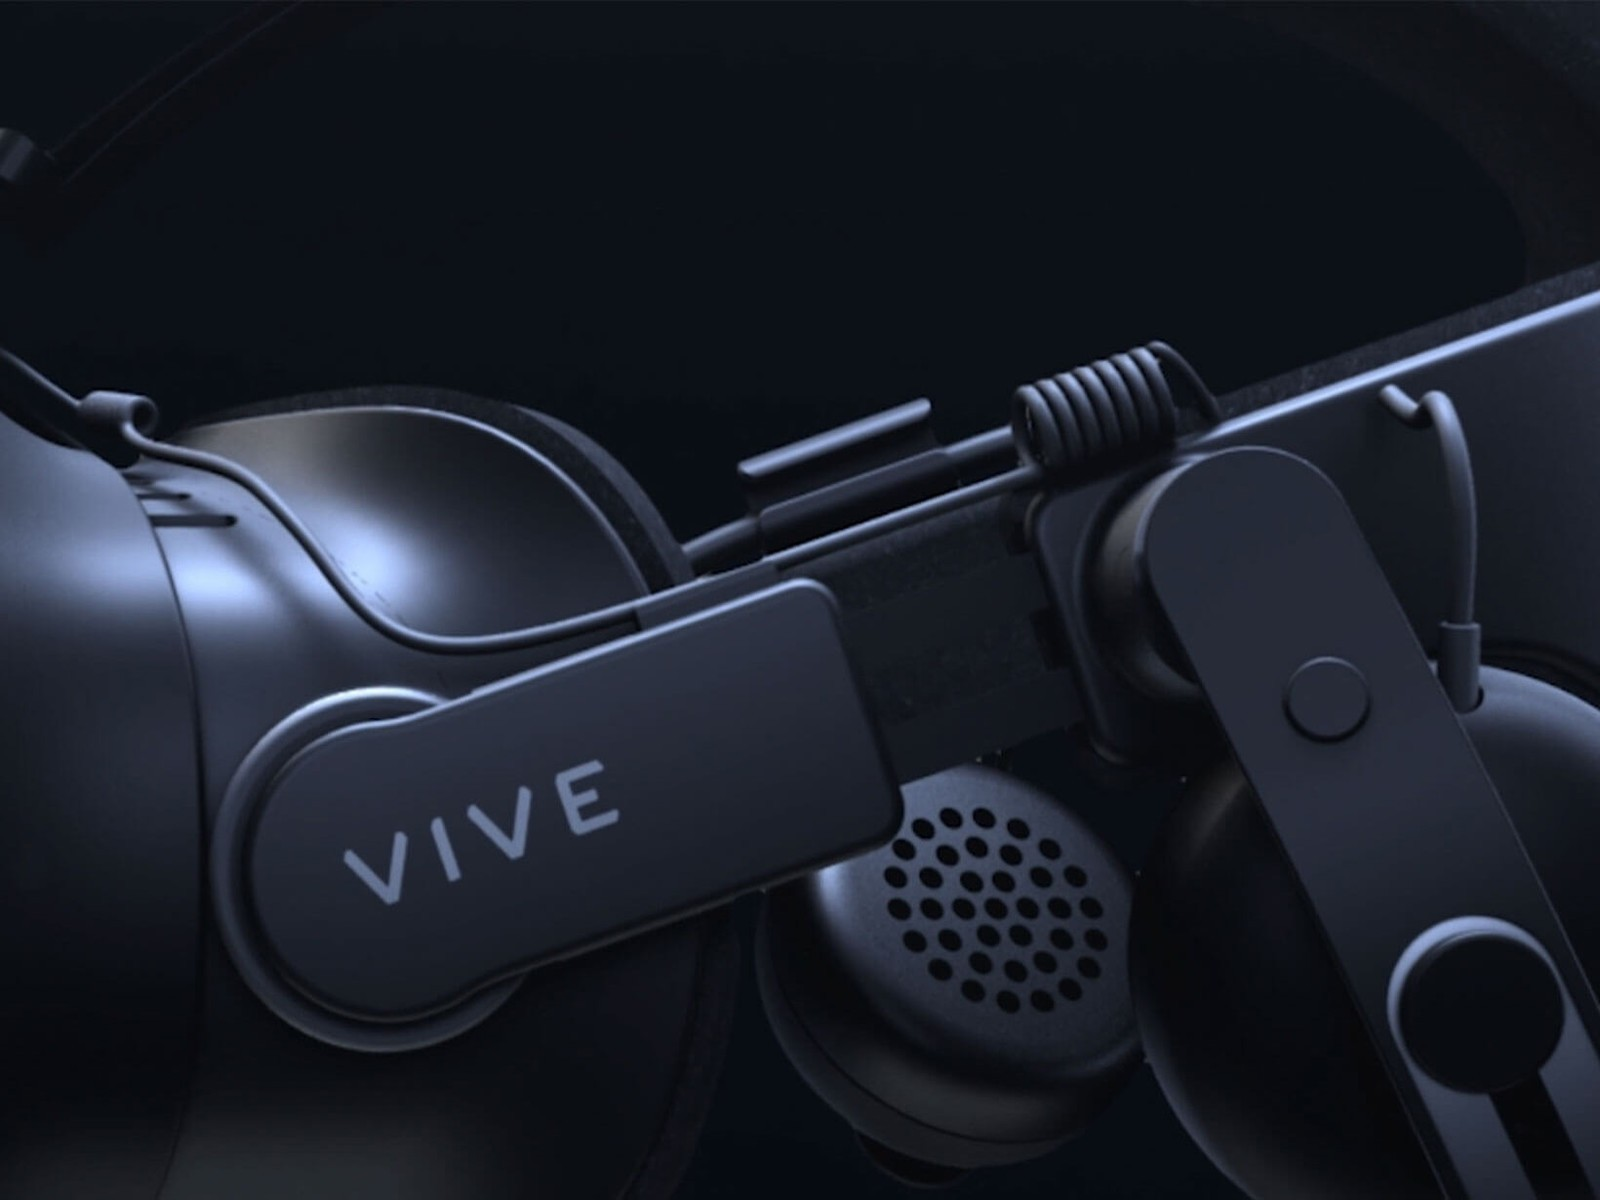 Where to buy the HTC Vive Deluxe Audio Strap